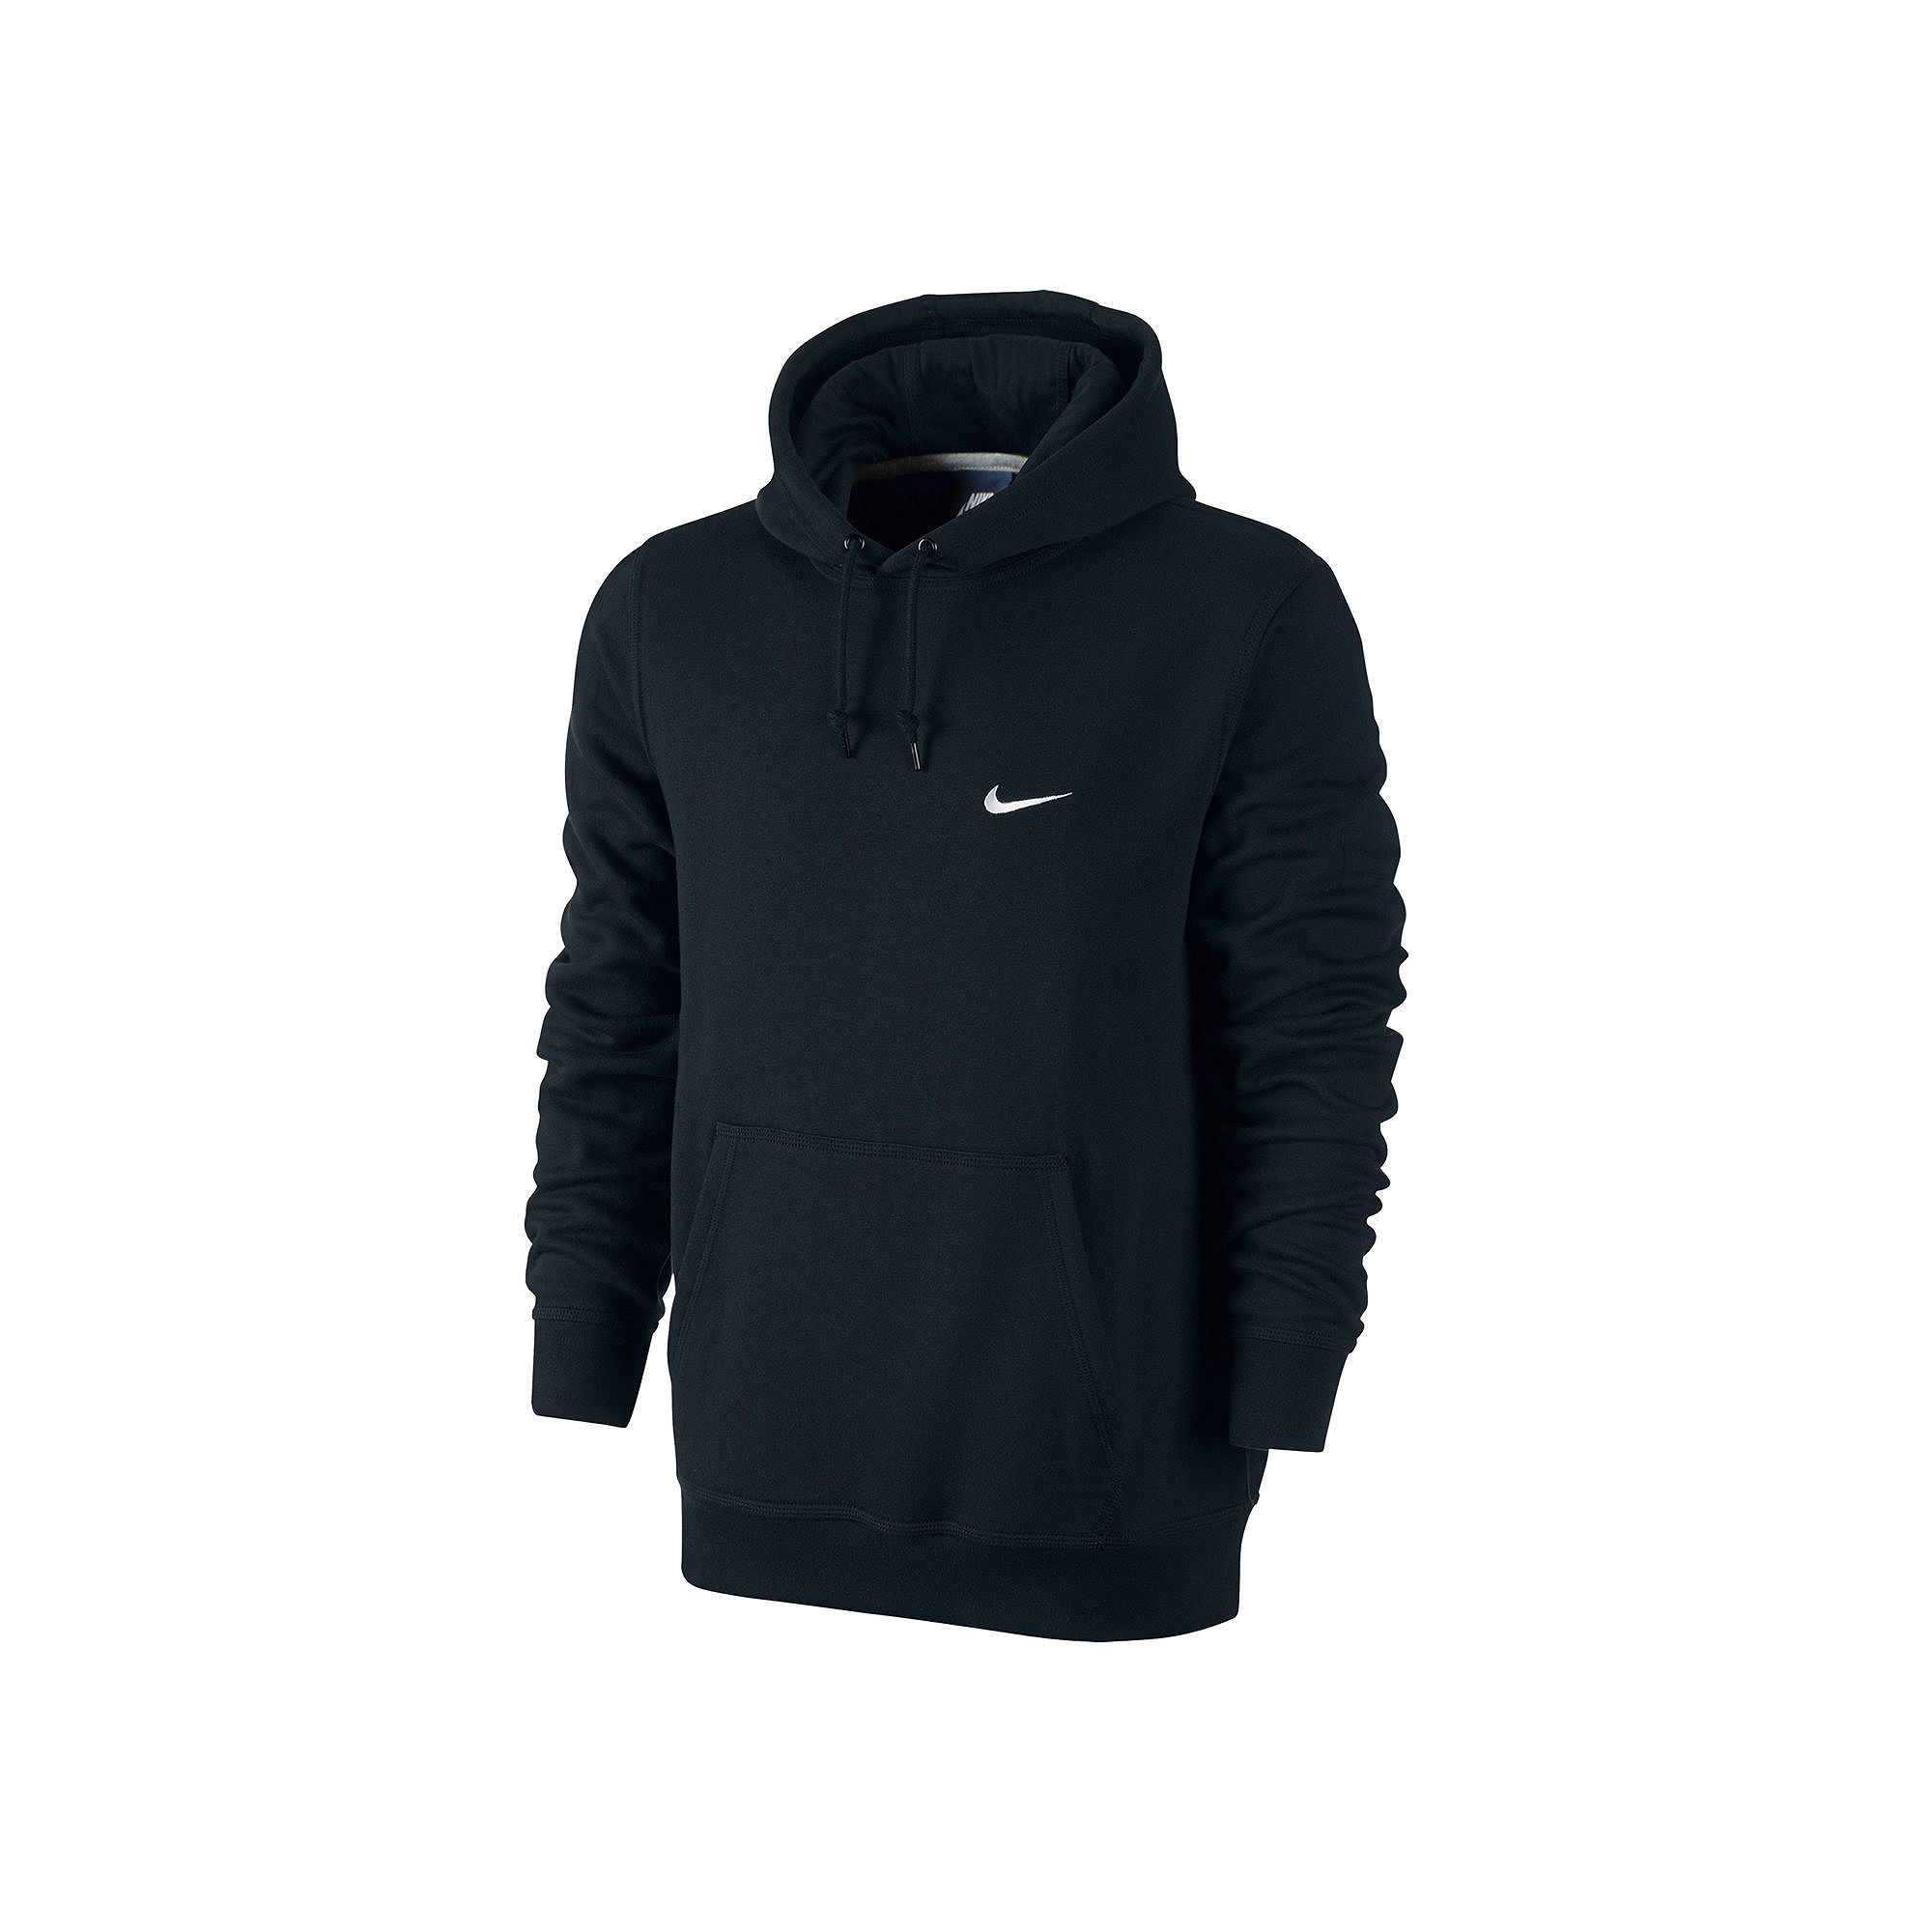 cheap price finest selection outlet store UPC 826218169397 - Nike Fleece Pullover Hoodie | upcitemdb.com